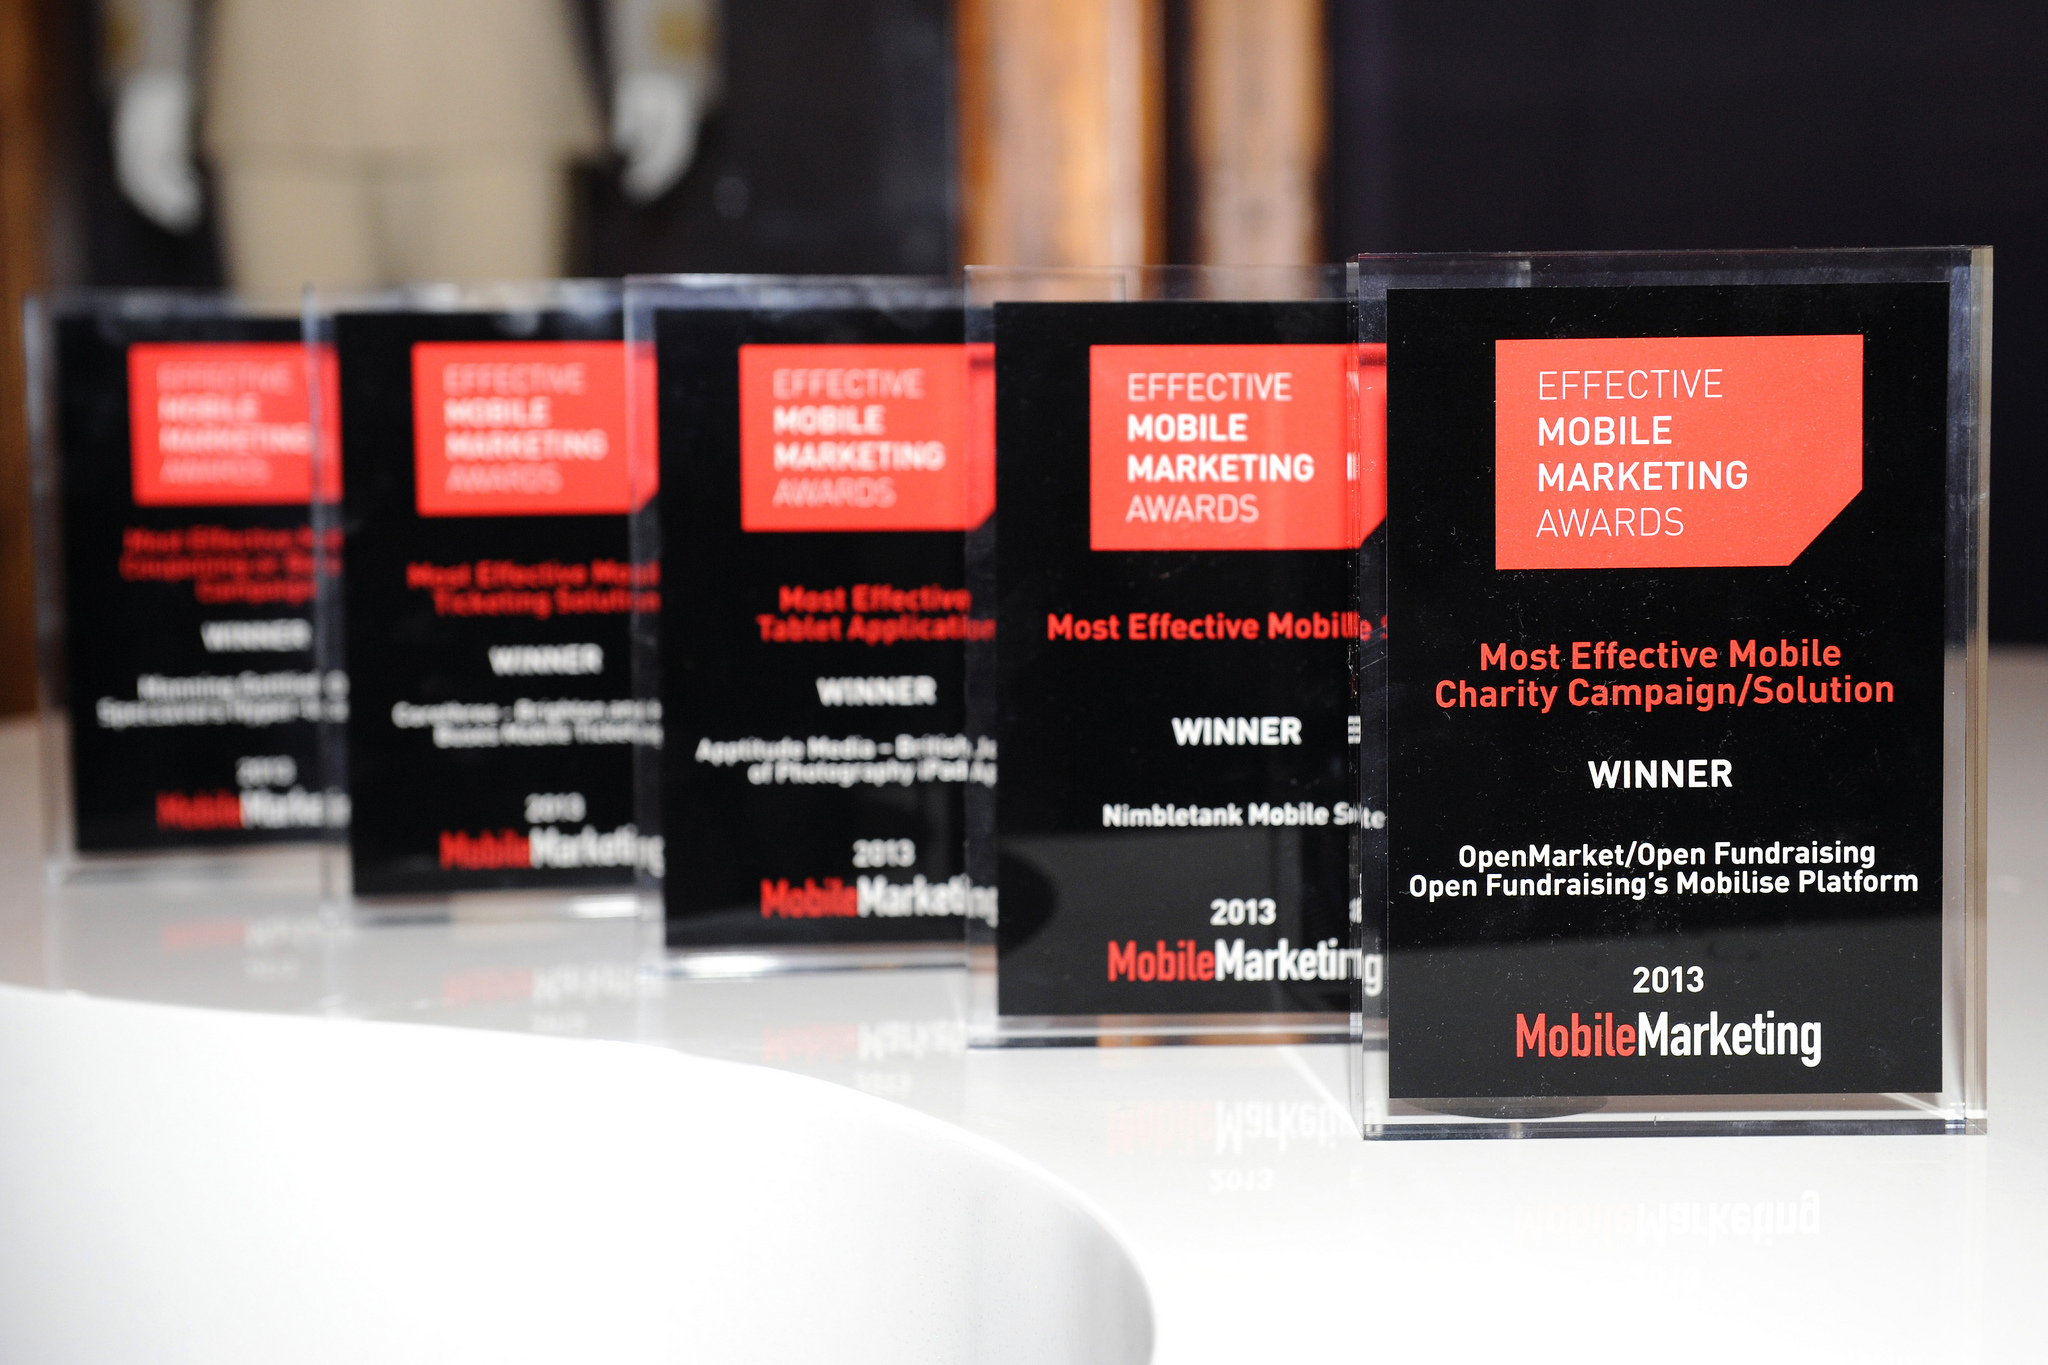 Don't Leave it Too Late to Enter the Effective Mobile Marketing Awards